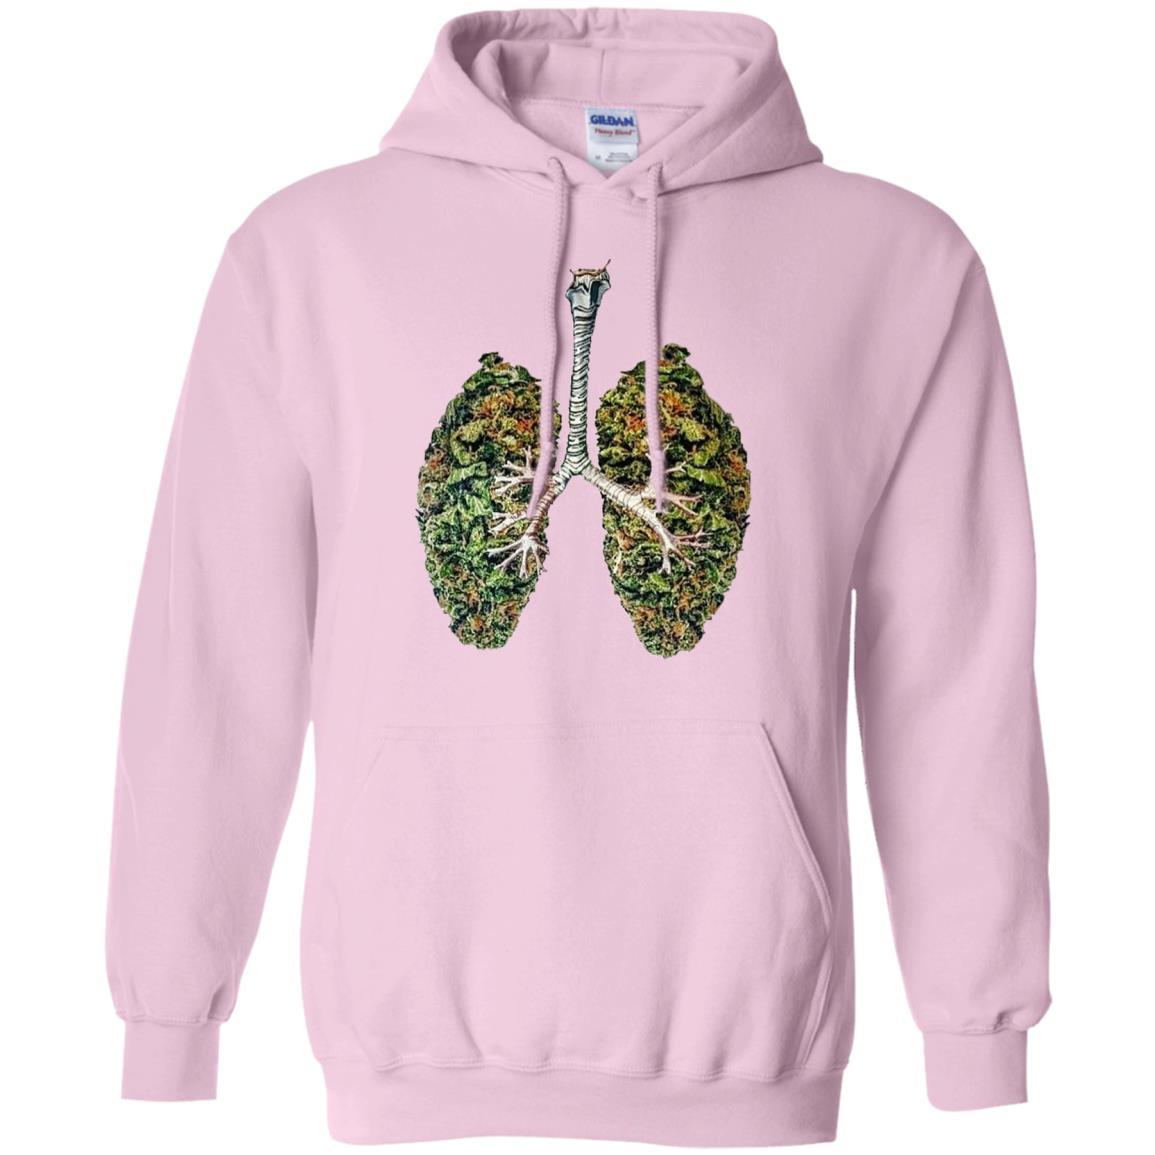 My Weed Lungs - Pullover Hoodie Light Pink / 5XL